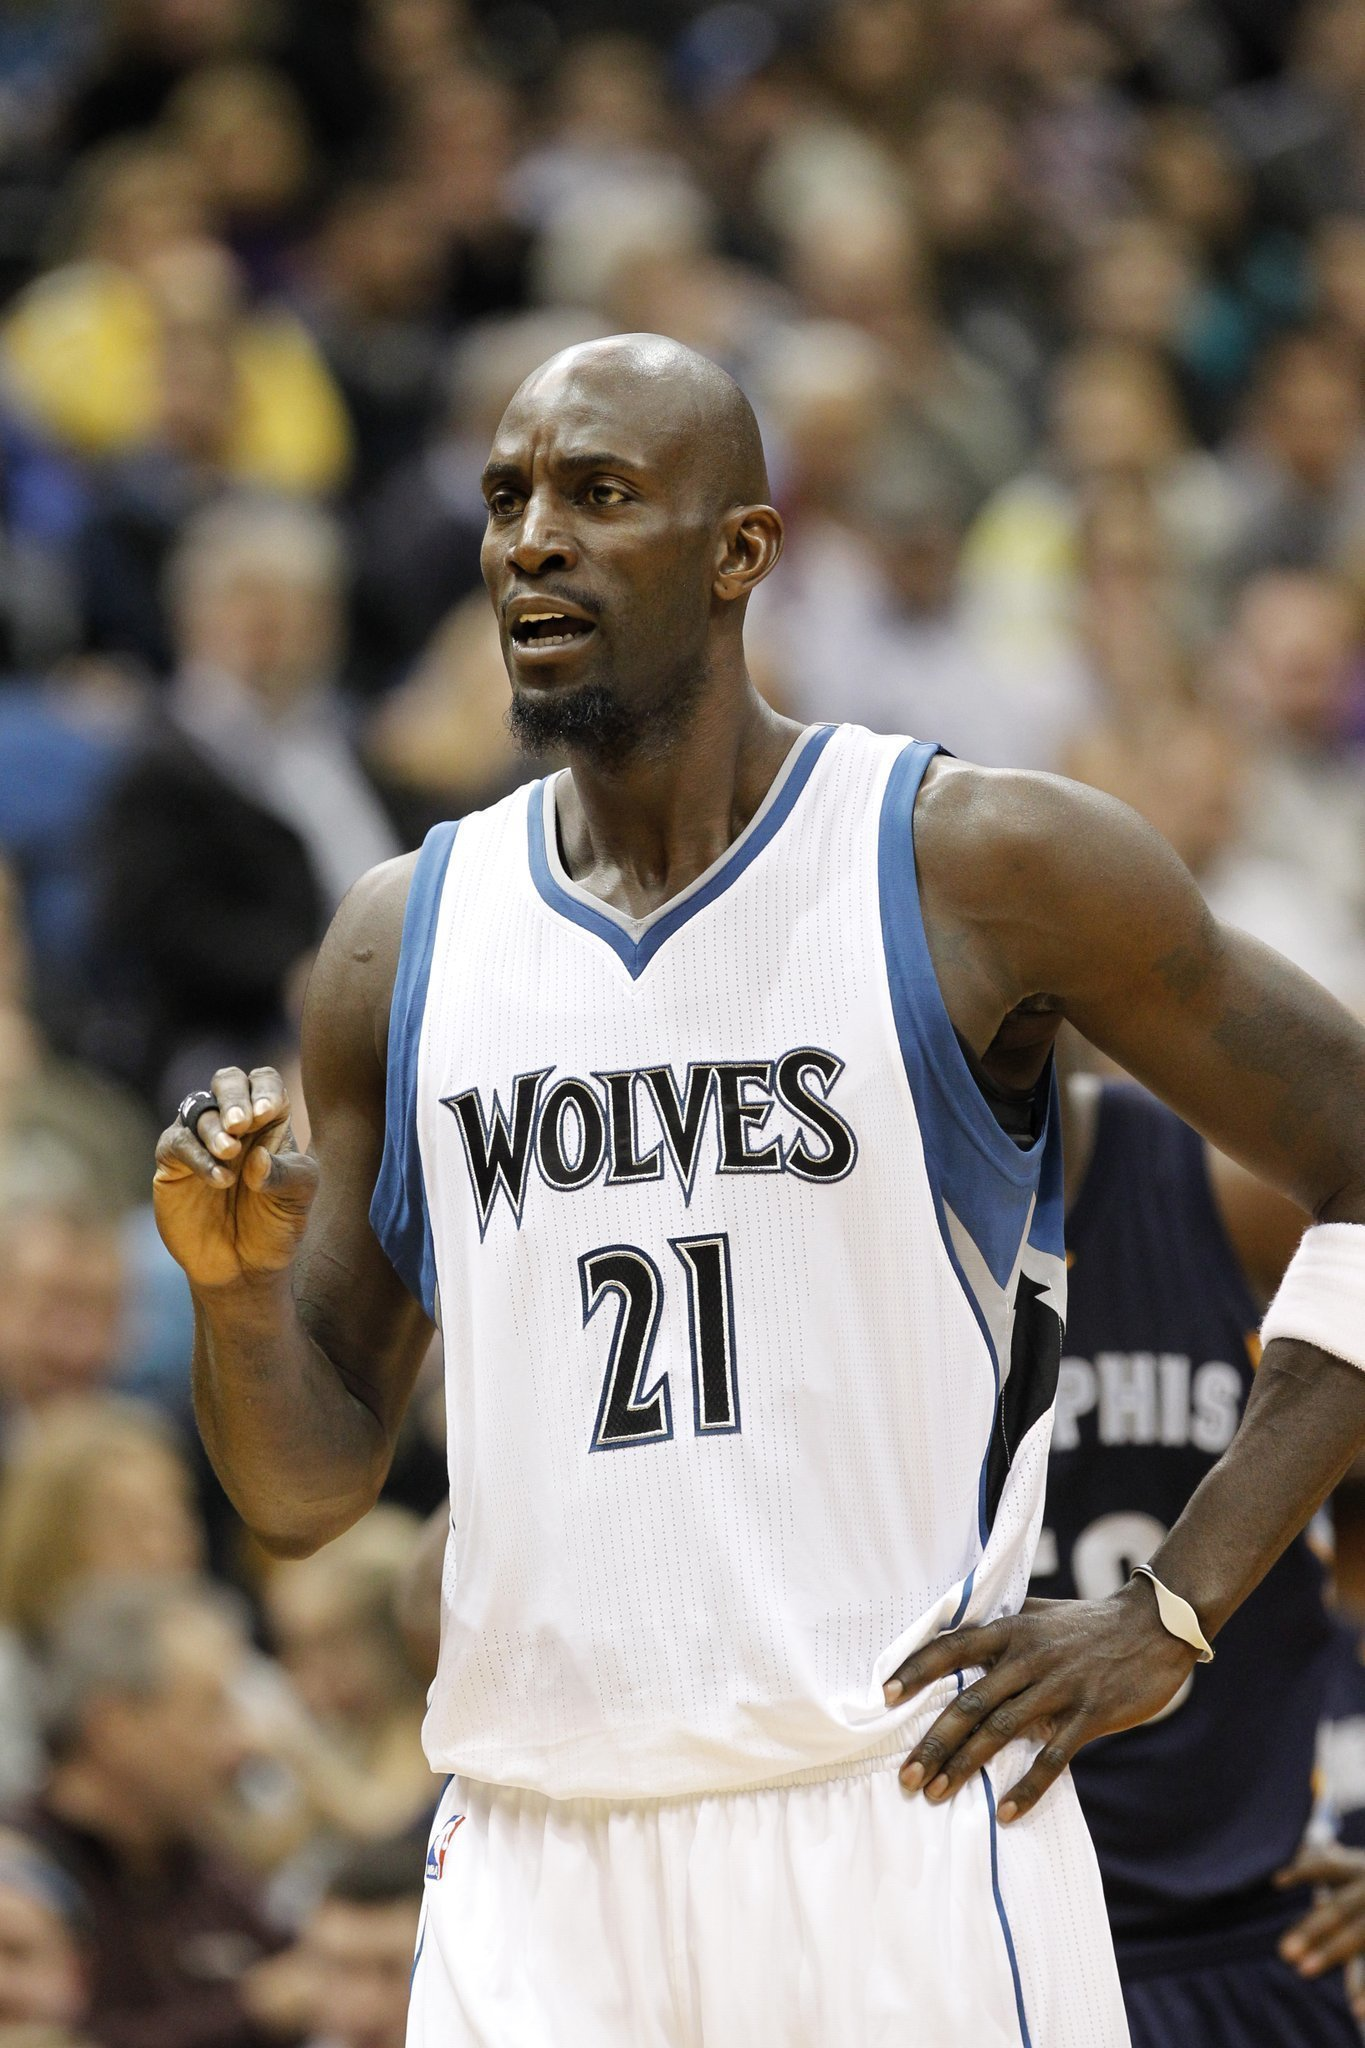 537147fbd Garnett signs contract with Timberwolves - The San Diego Union-Tribune